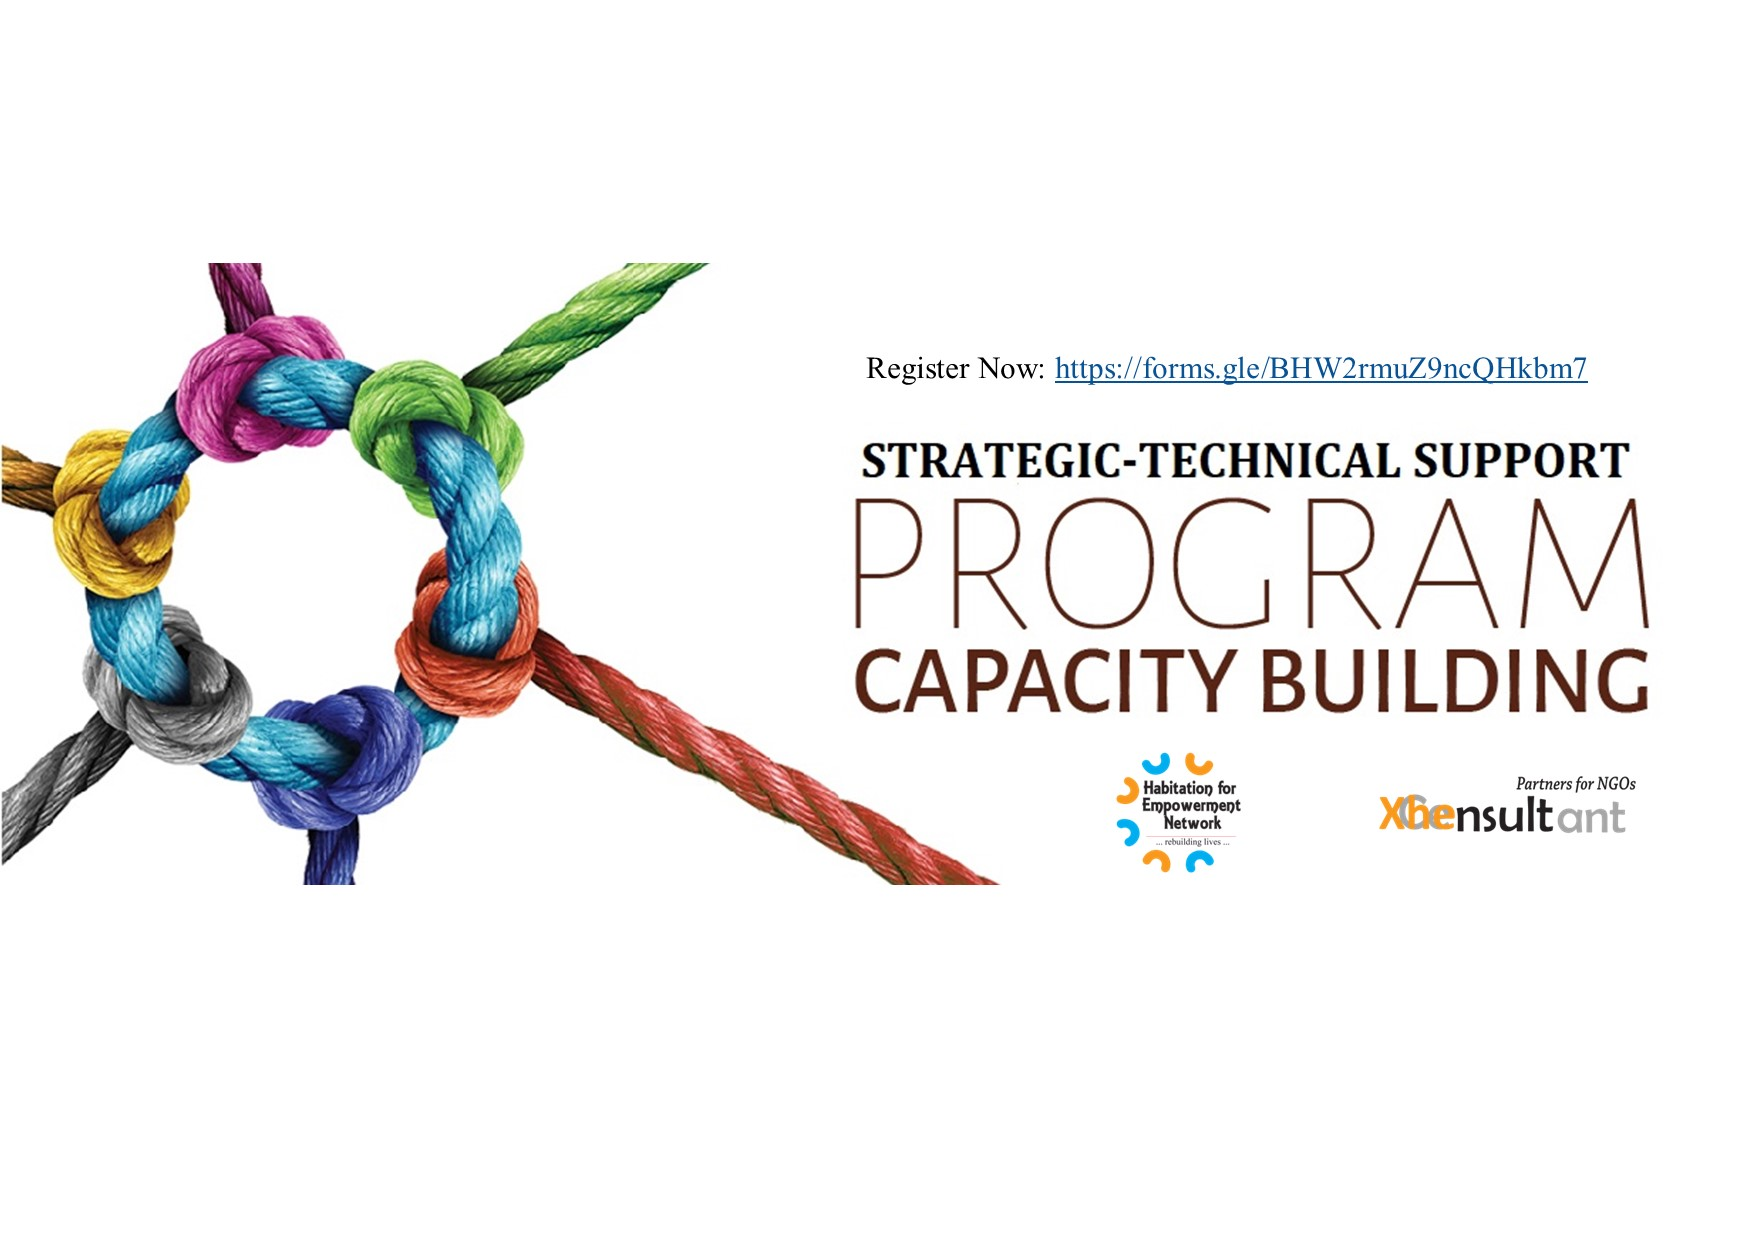 Call for Applications: 2021 Strategic-Technical Support Program (Capacity Building for NGO/CBOs)